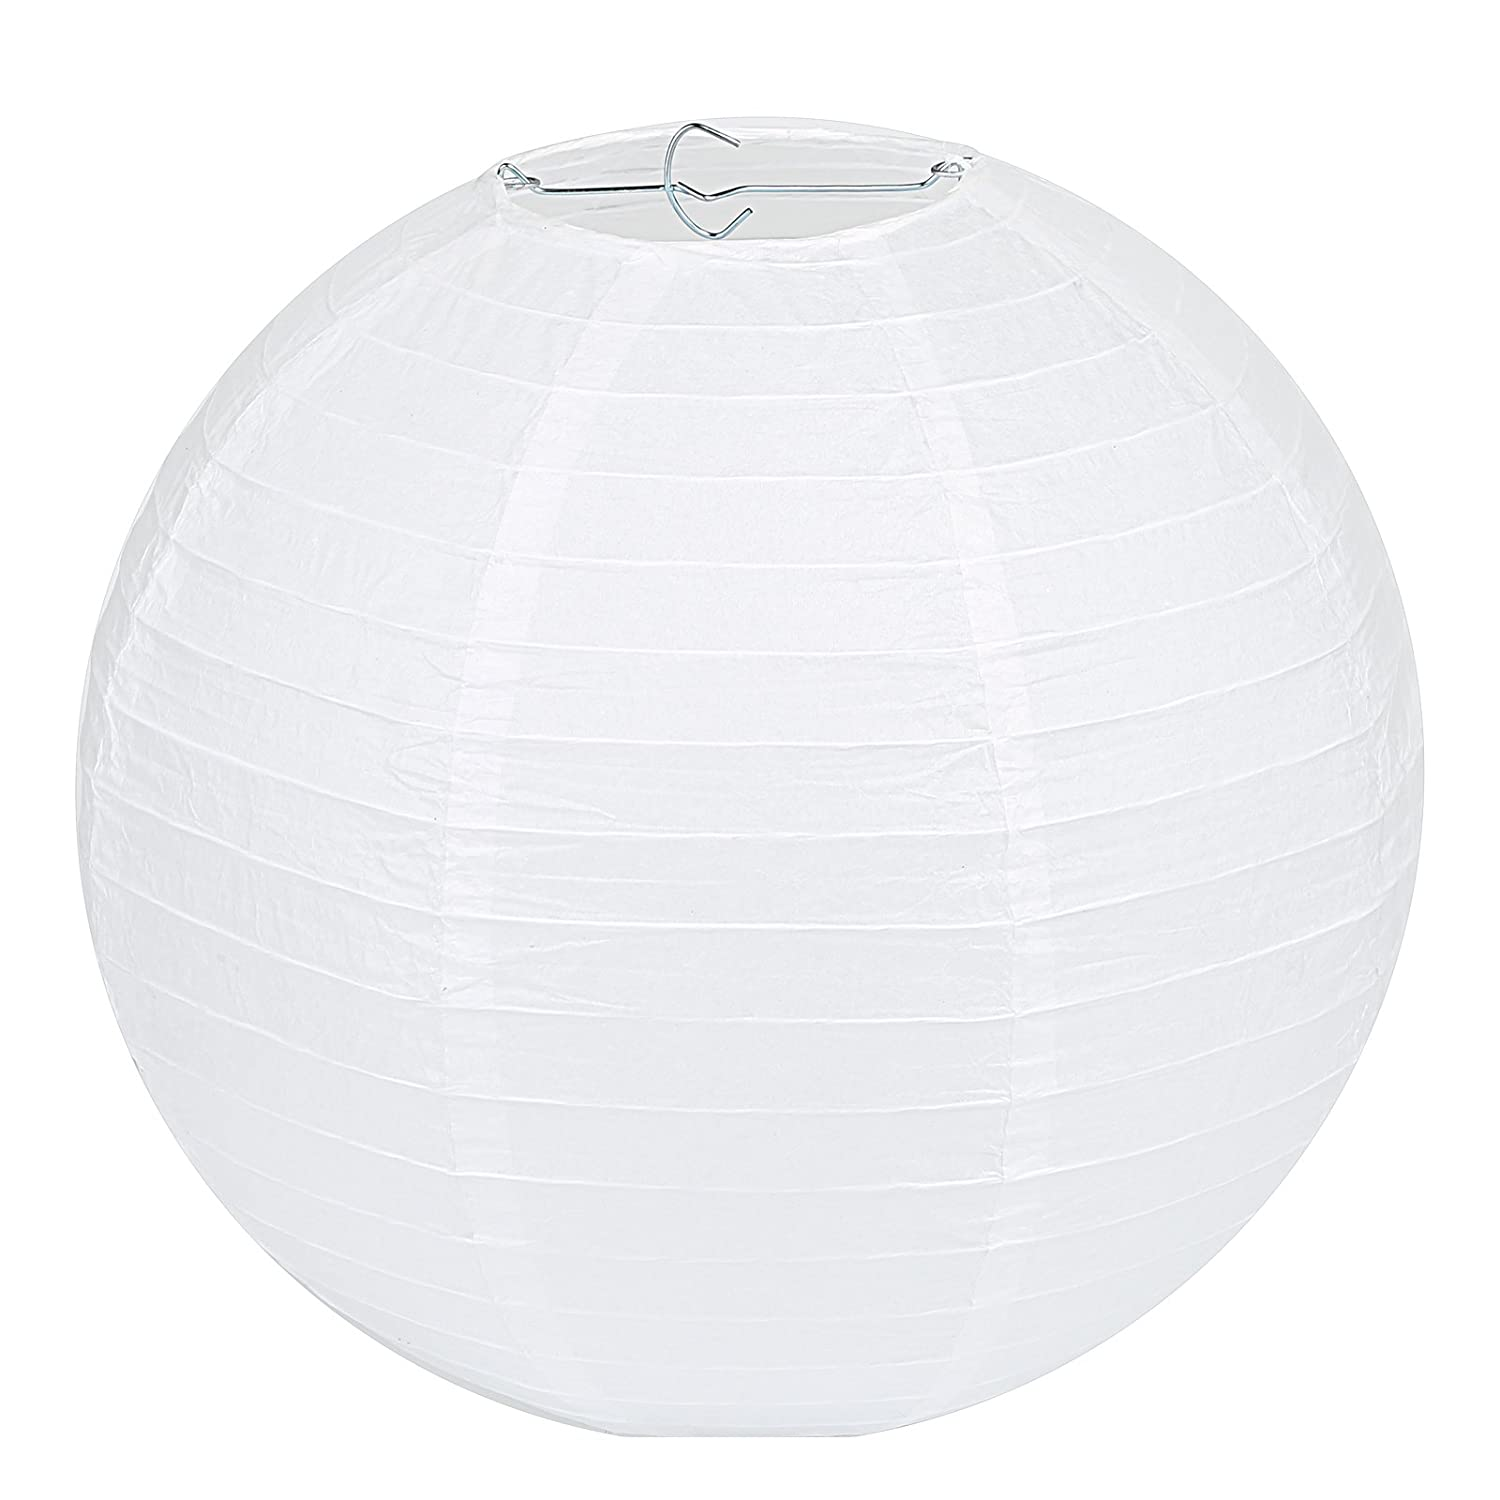 Paper lantern lamps amazon lighting ceiling fans novelty lihao 12 inch white round paper lanterns 10 pack aloadofball Gallery